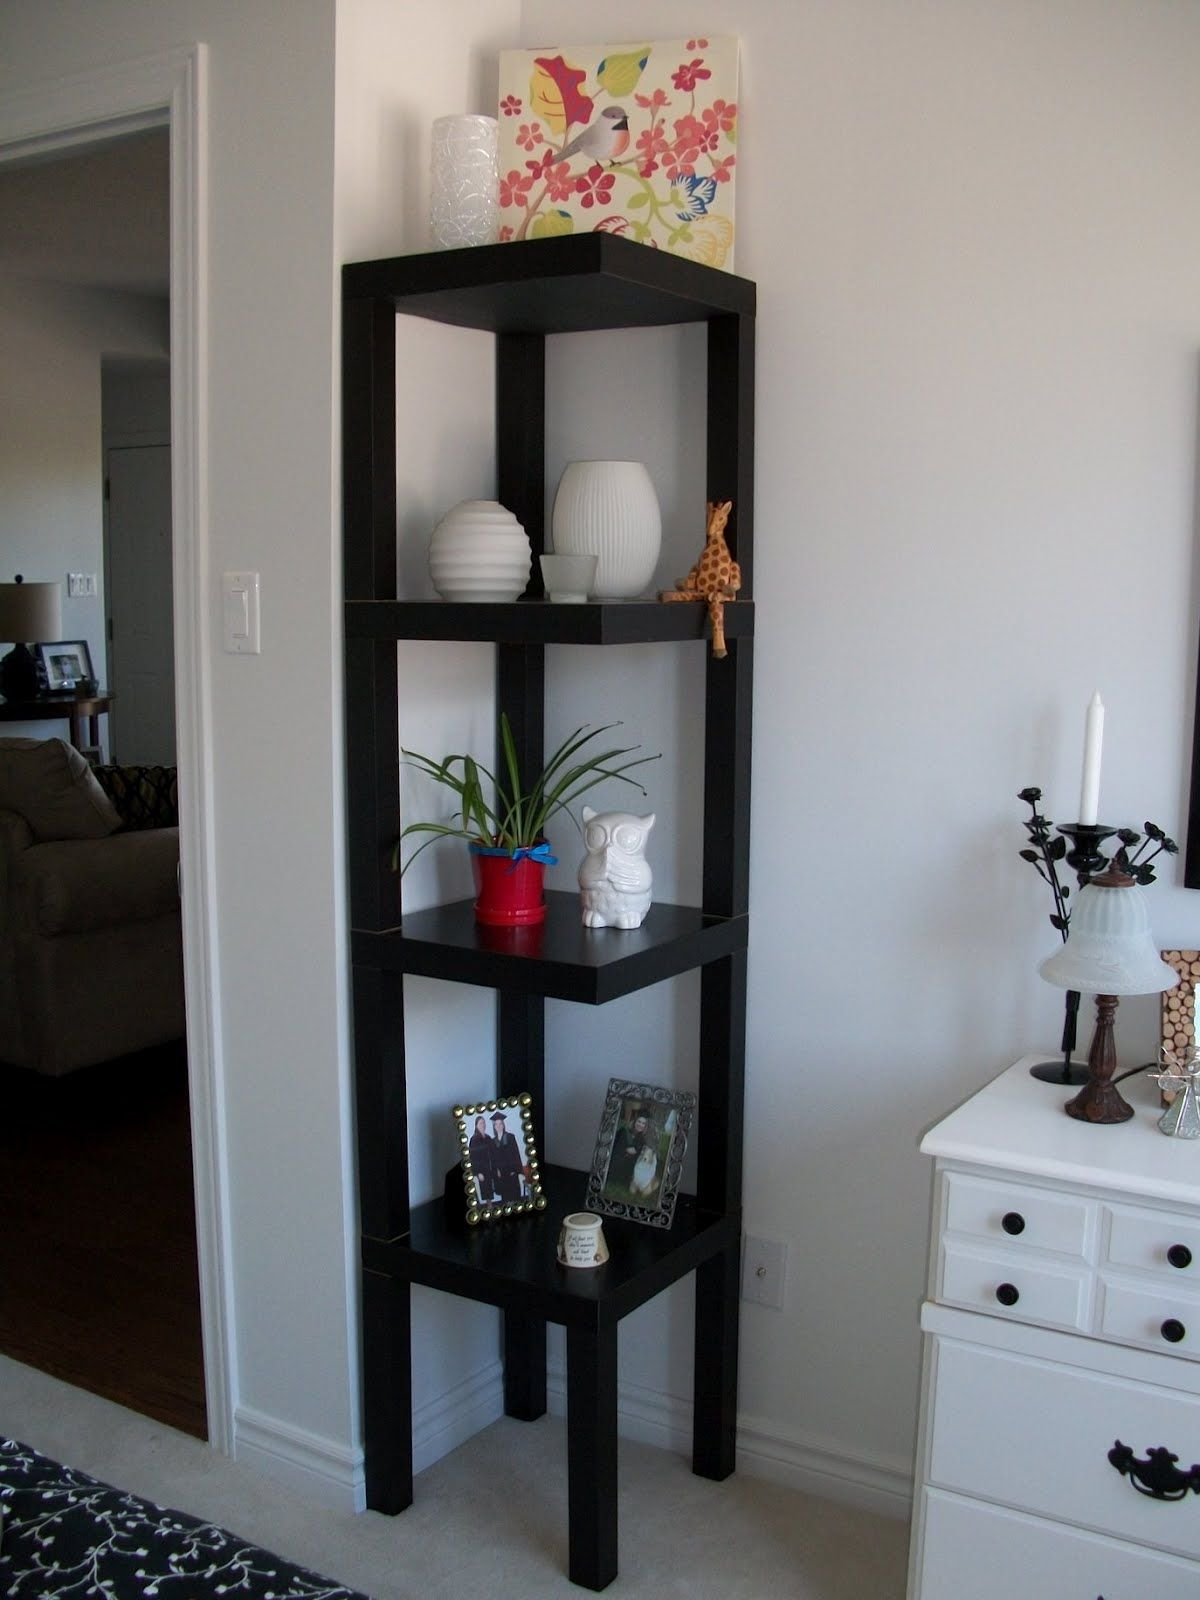 Lacks Furniture San Antonio #25: 1000+ Images About Ikea Hack On Pinterest | Lack Table, Chalkboard Table And Side Tables